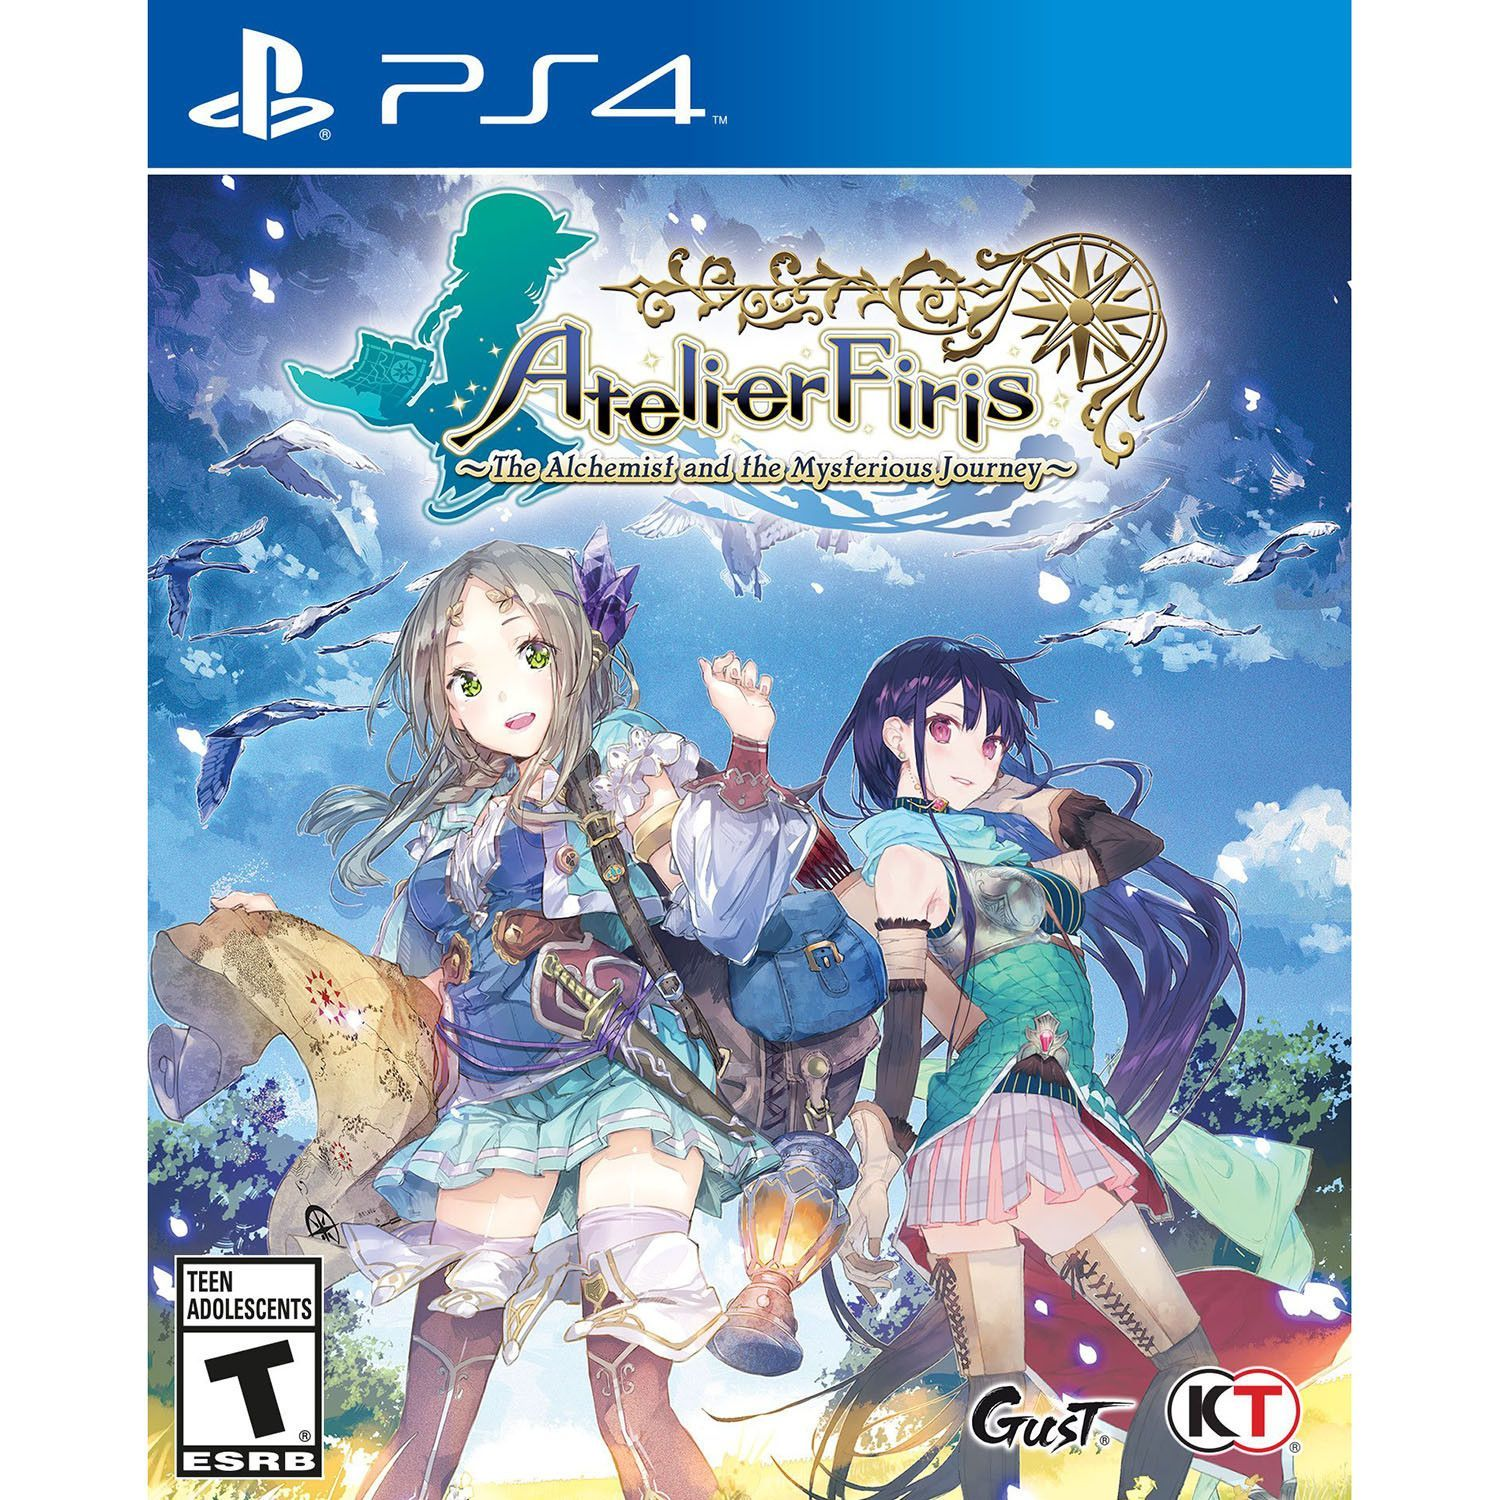 Kết quả hình ảnh cho Atelier Firis The Alchemist and the Mysterious Journey cover ps4